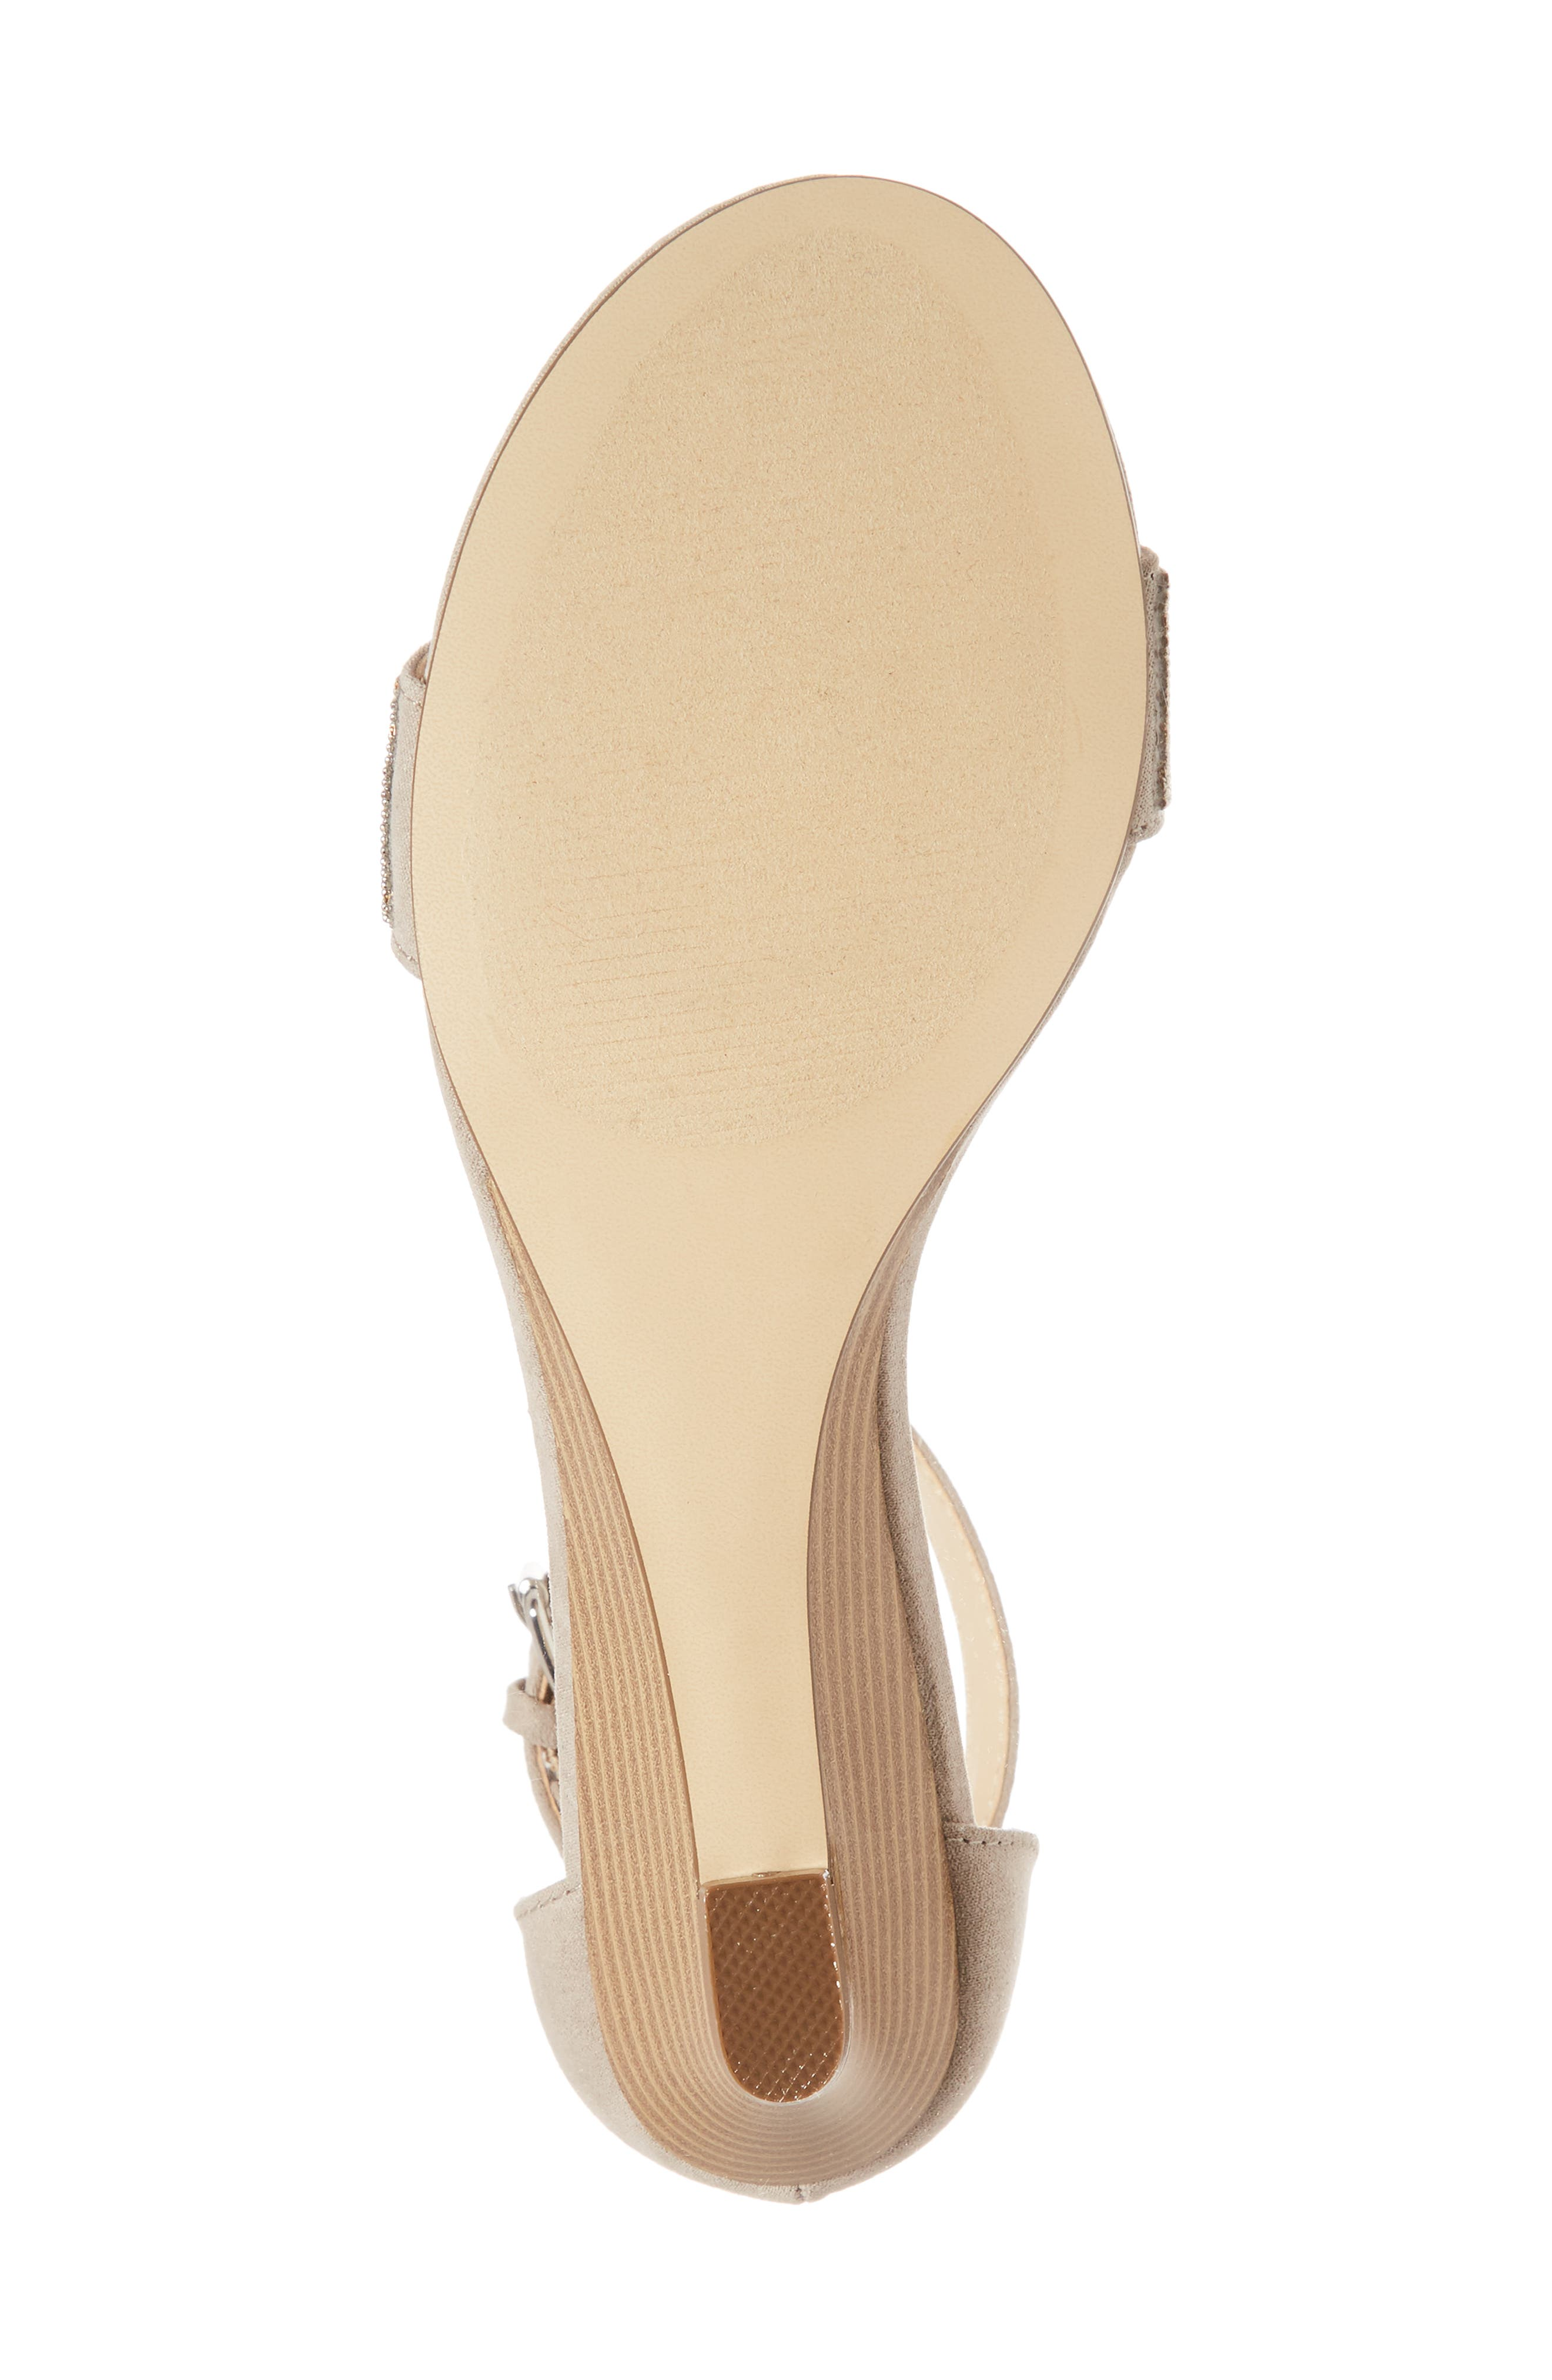 Enfield Ankle Strap Wedge Sandal,                             Alternate thumbnail 6, color,                             Taupe Suede